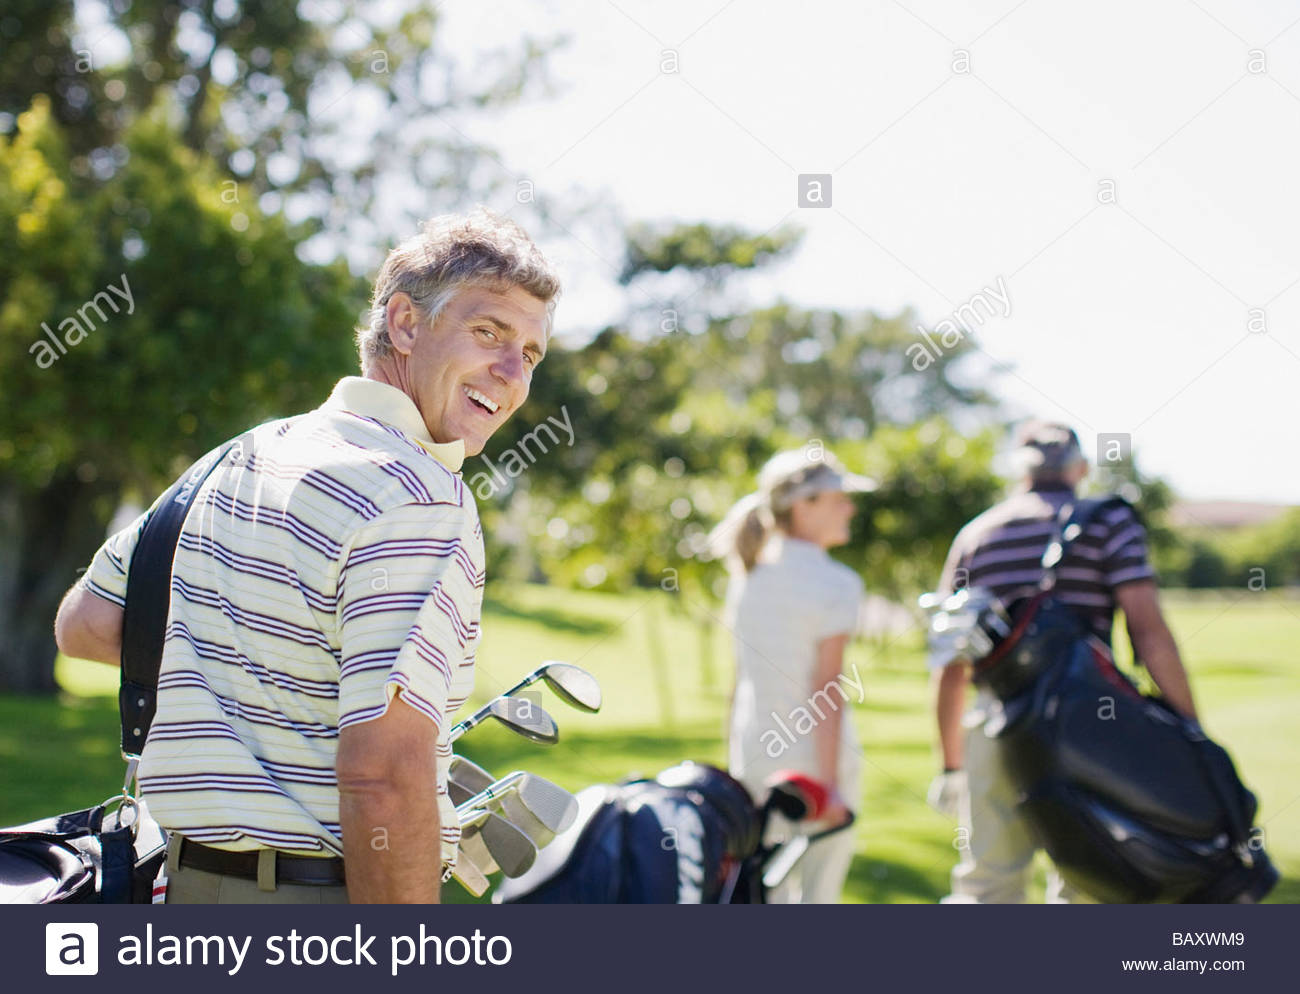 Friends carrying golf bags - Stock Image